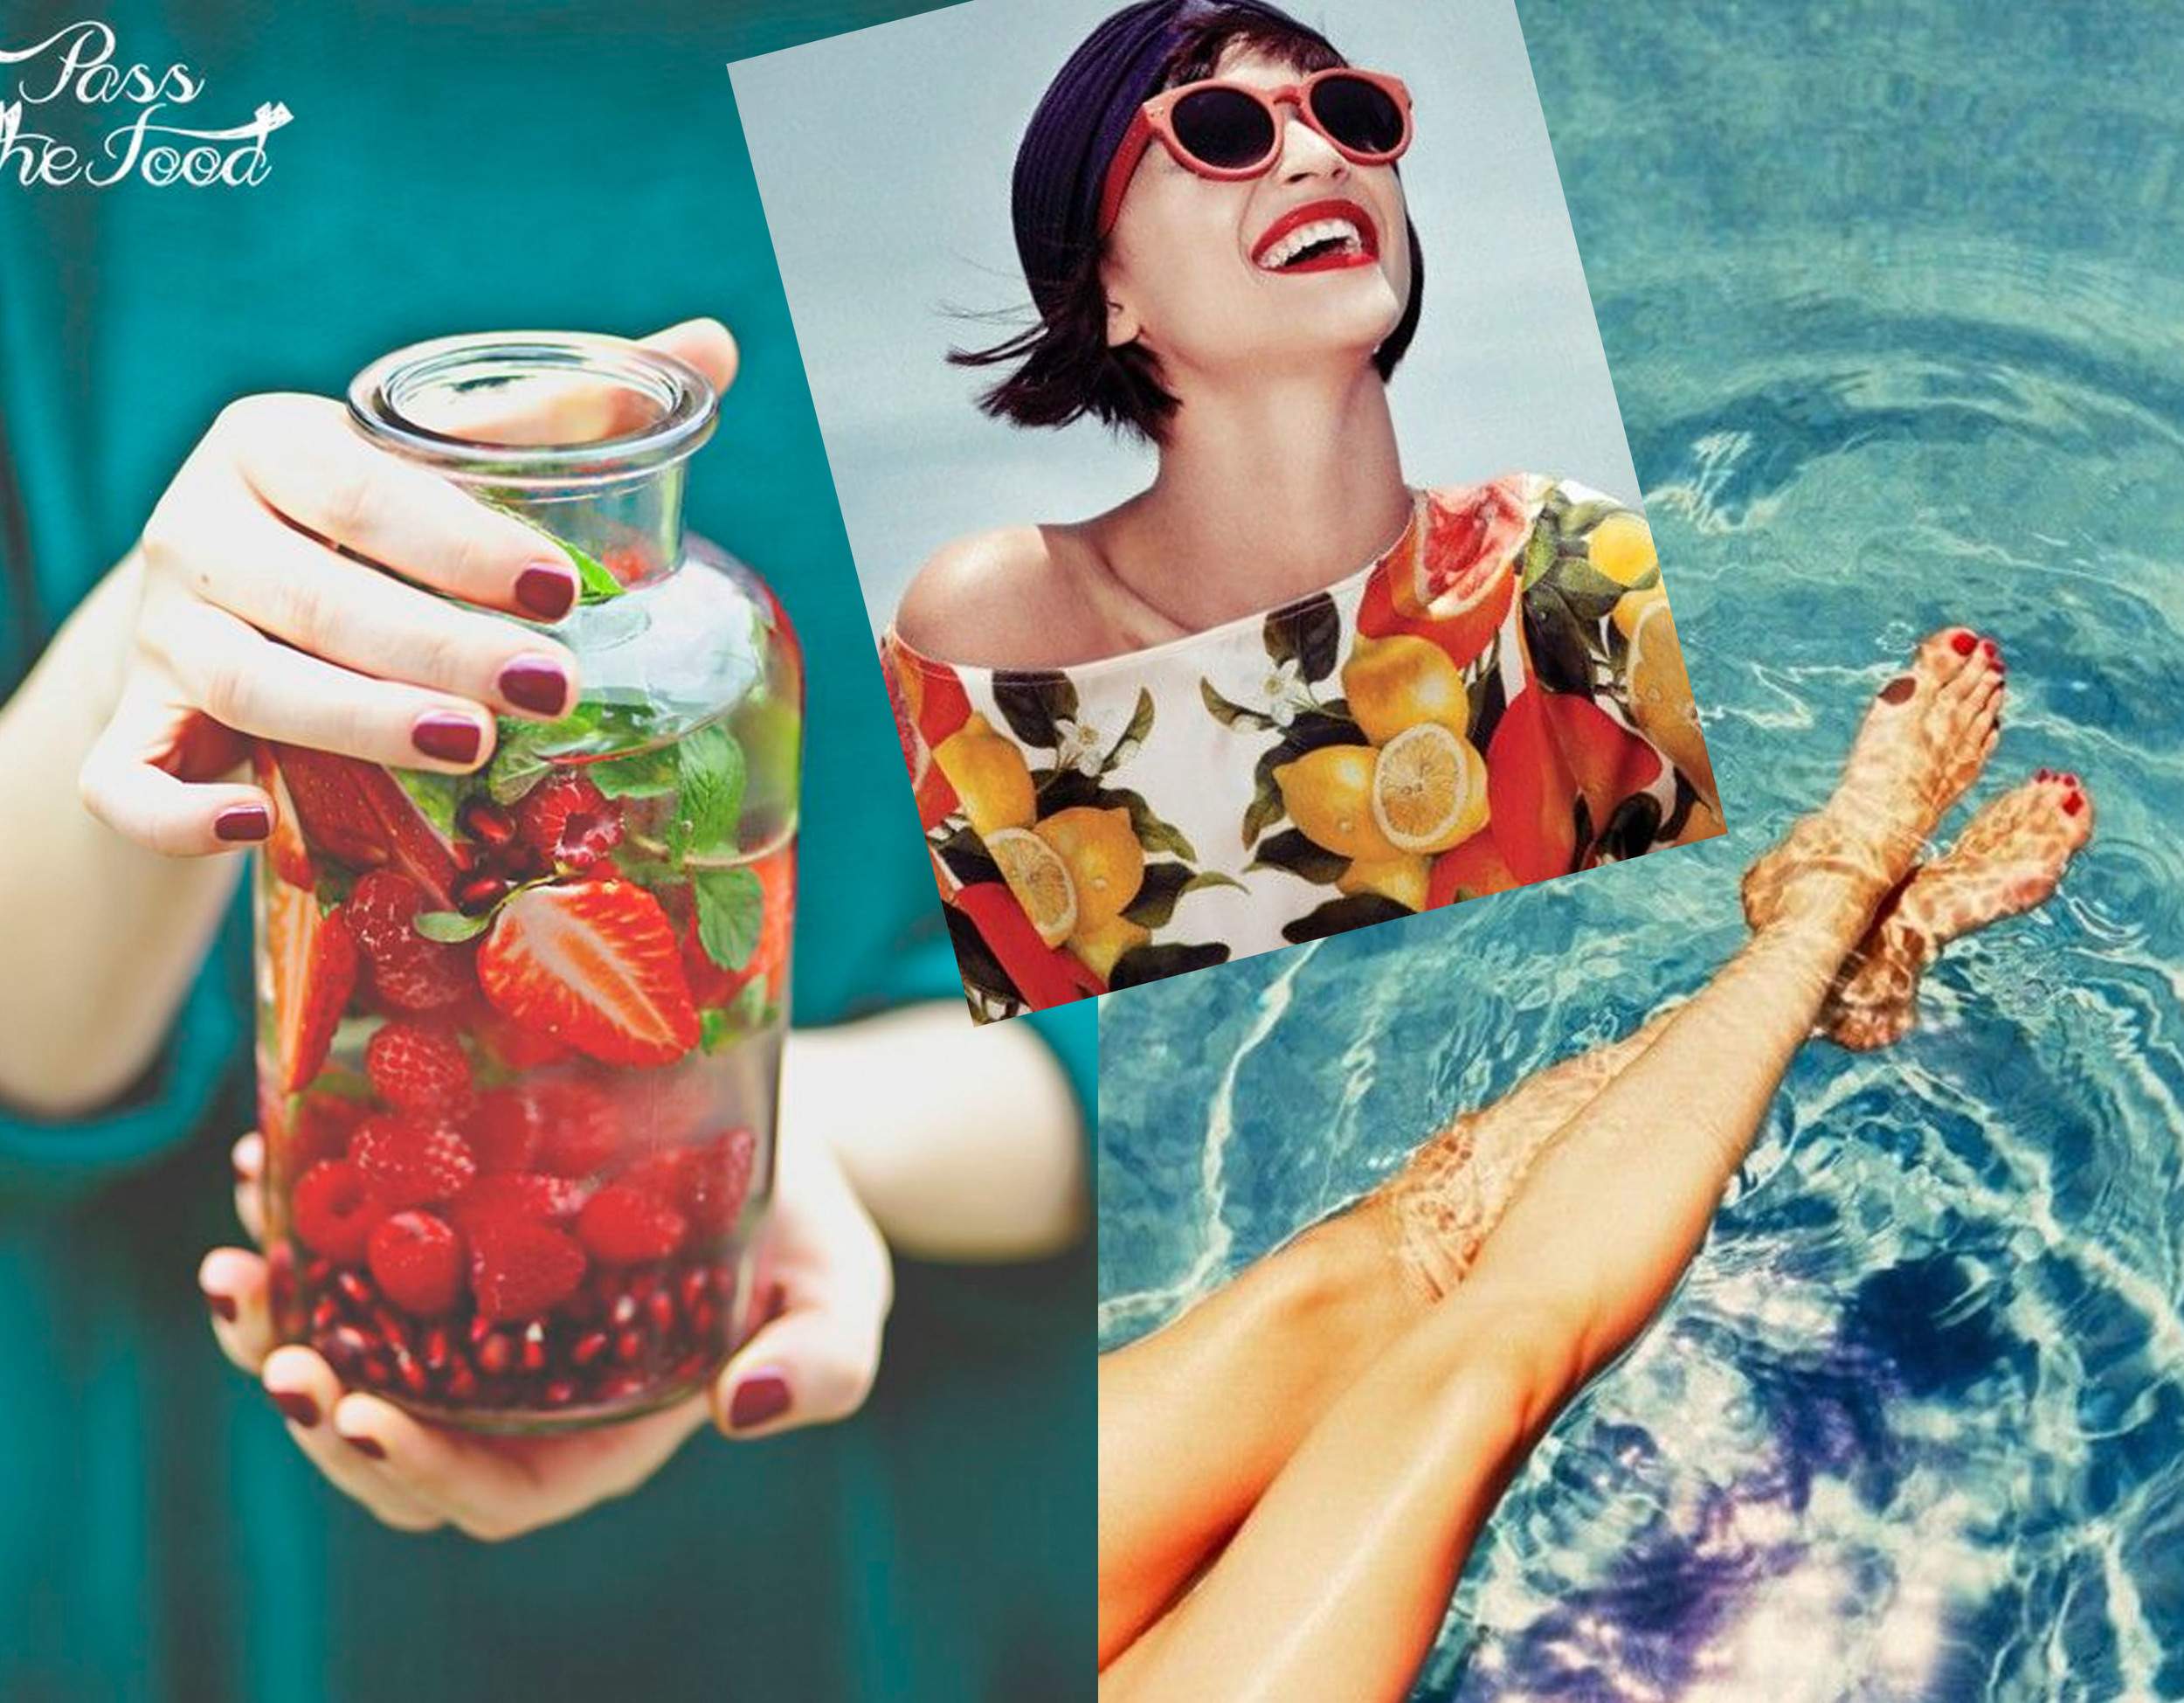 infused water  Pass the Food  - fashion image via  Telegraph  - pool image via  They All Hate Us